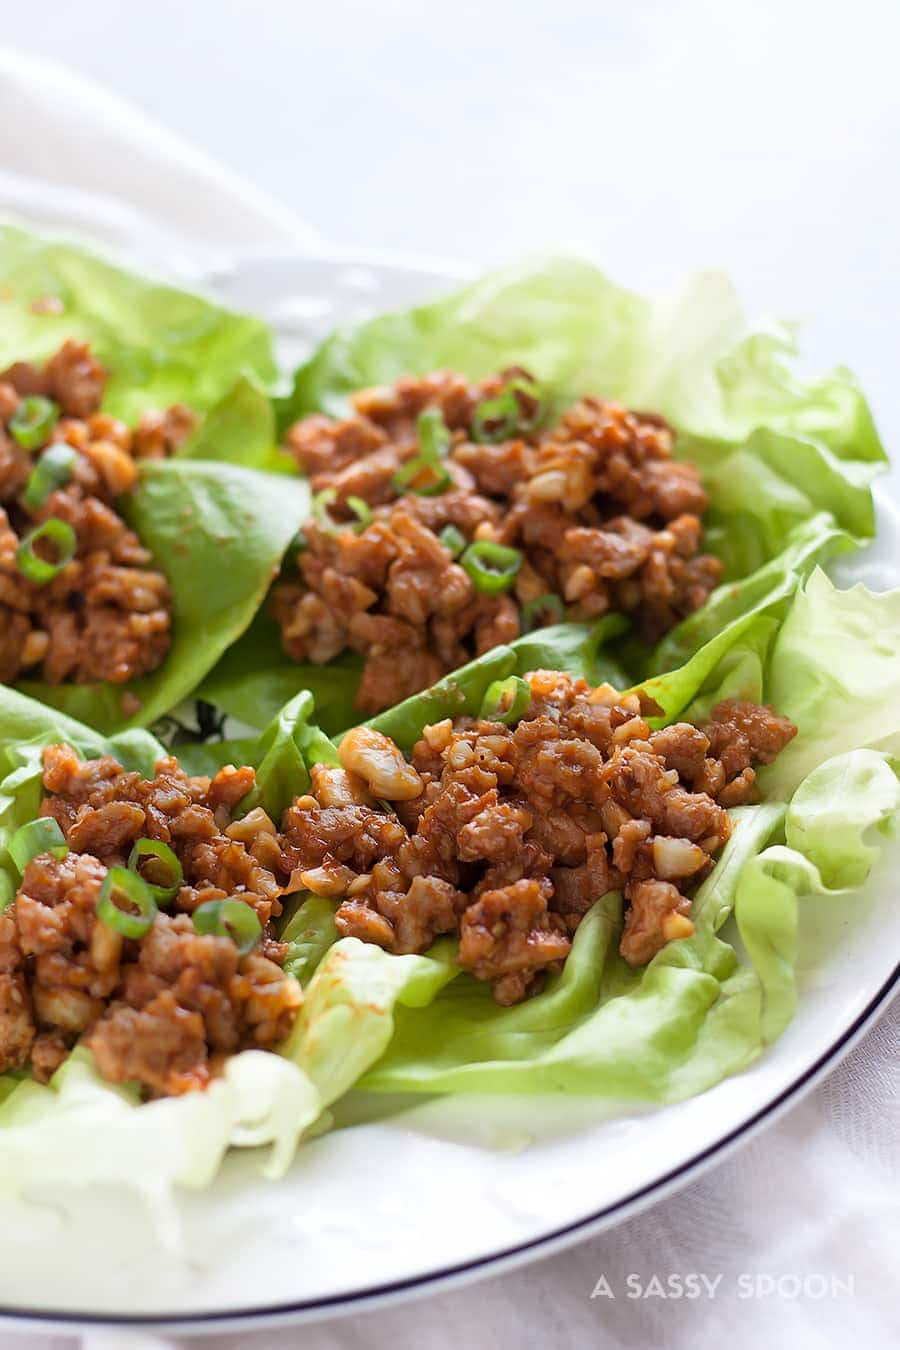 Cashew Basil Chicken Lettuce Wraps. Ground chicken with sweet hoisin sauce, salty soy sauce, crunchy cashews, scallions, and fresh basil. Dinner can't get more deliciously healthy than this!